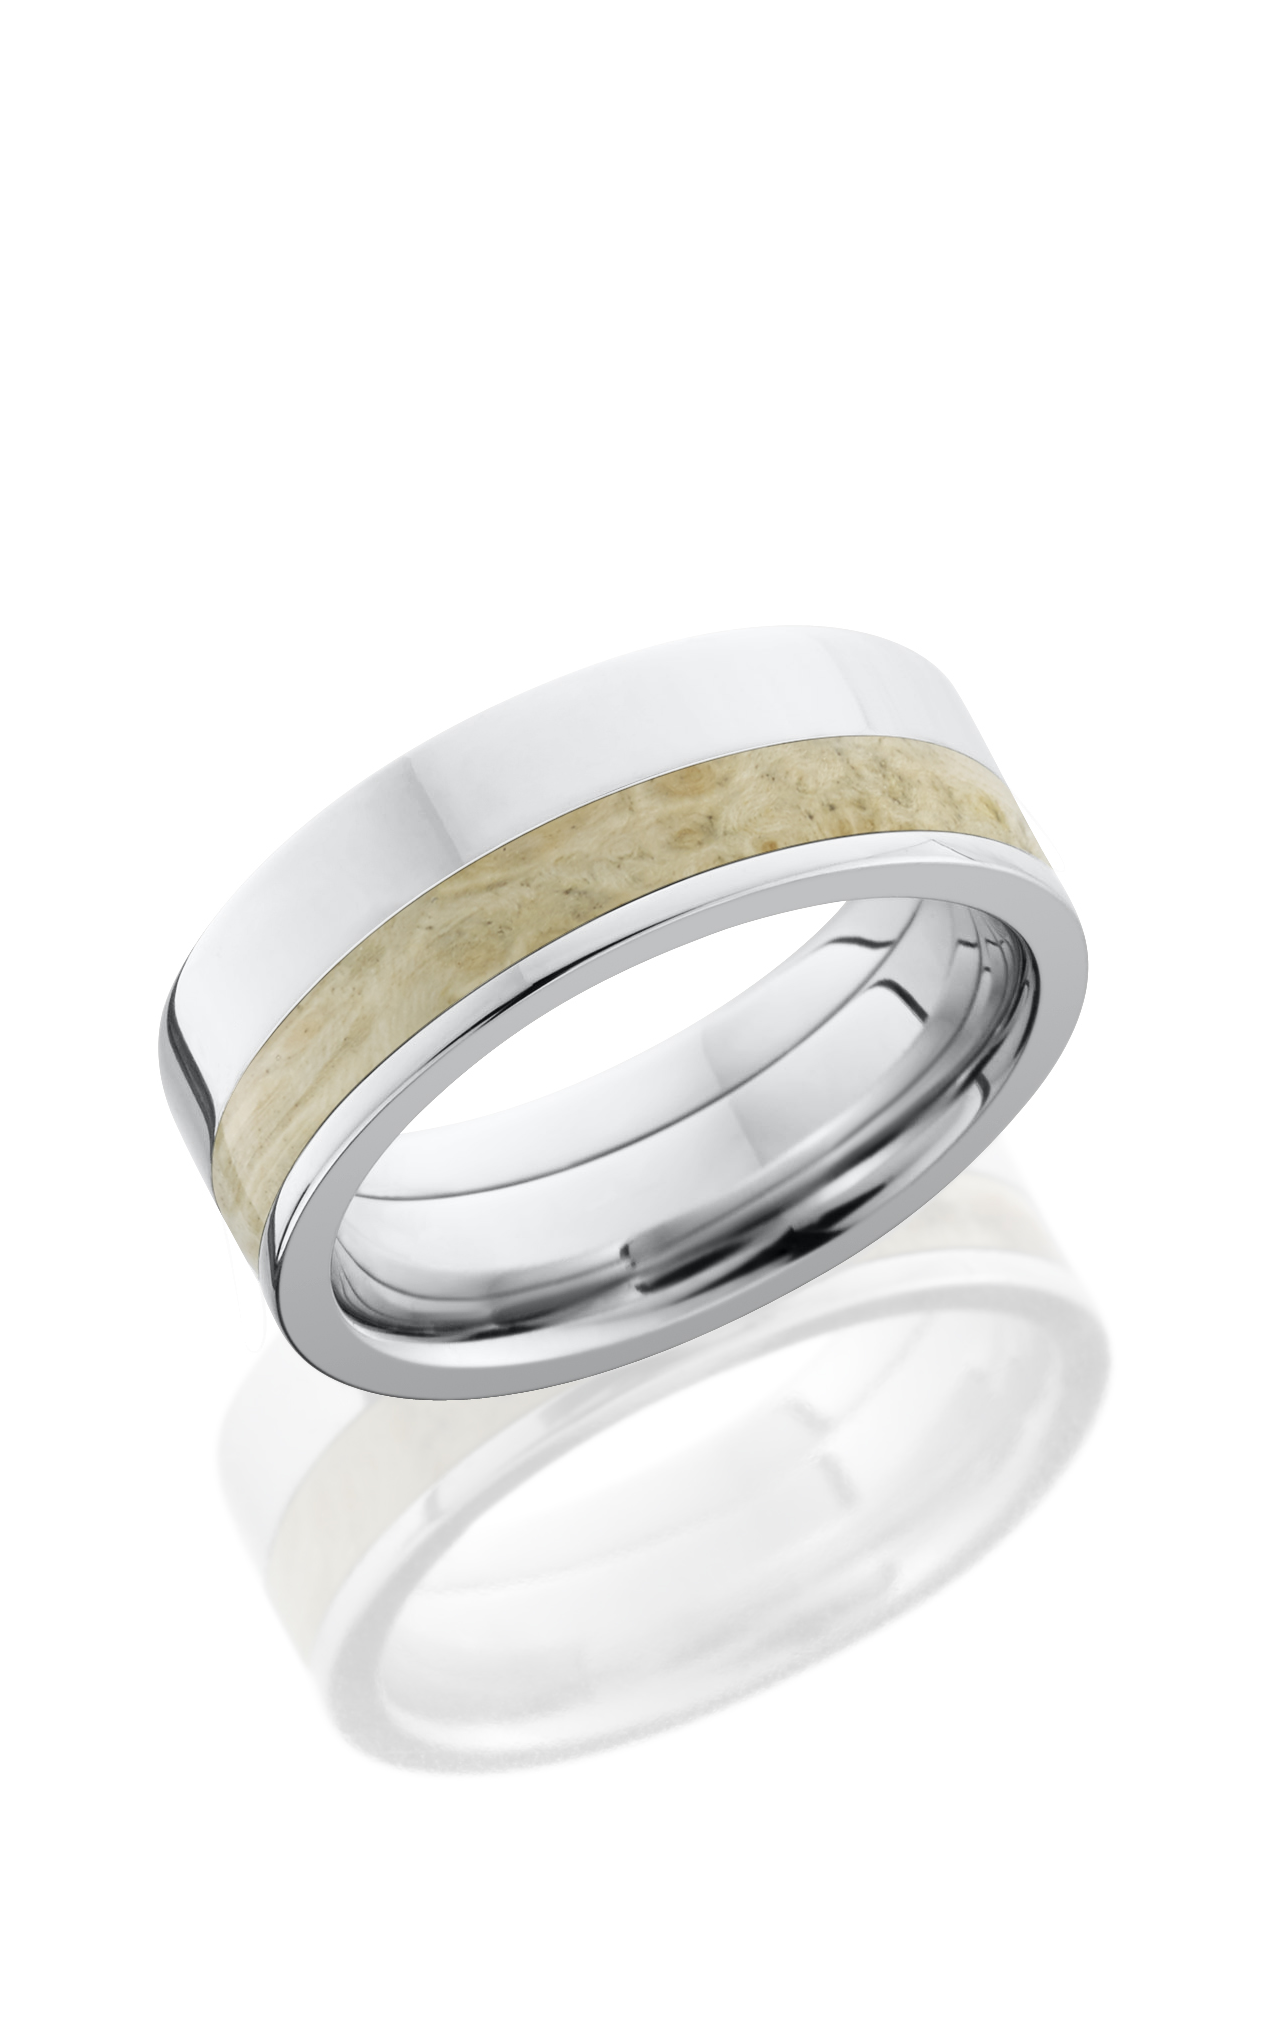 Lashbrook Hardwood Collection Wedding band 90108 product image